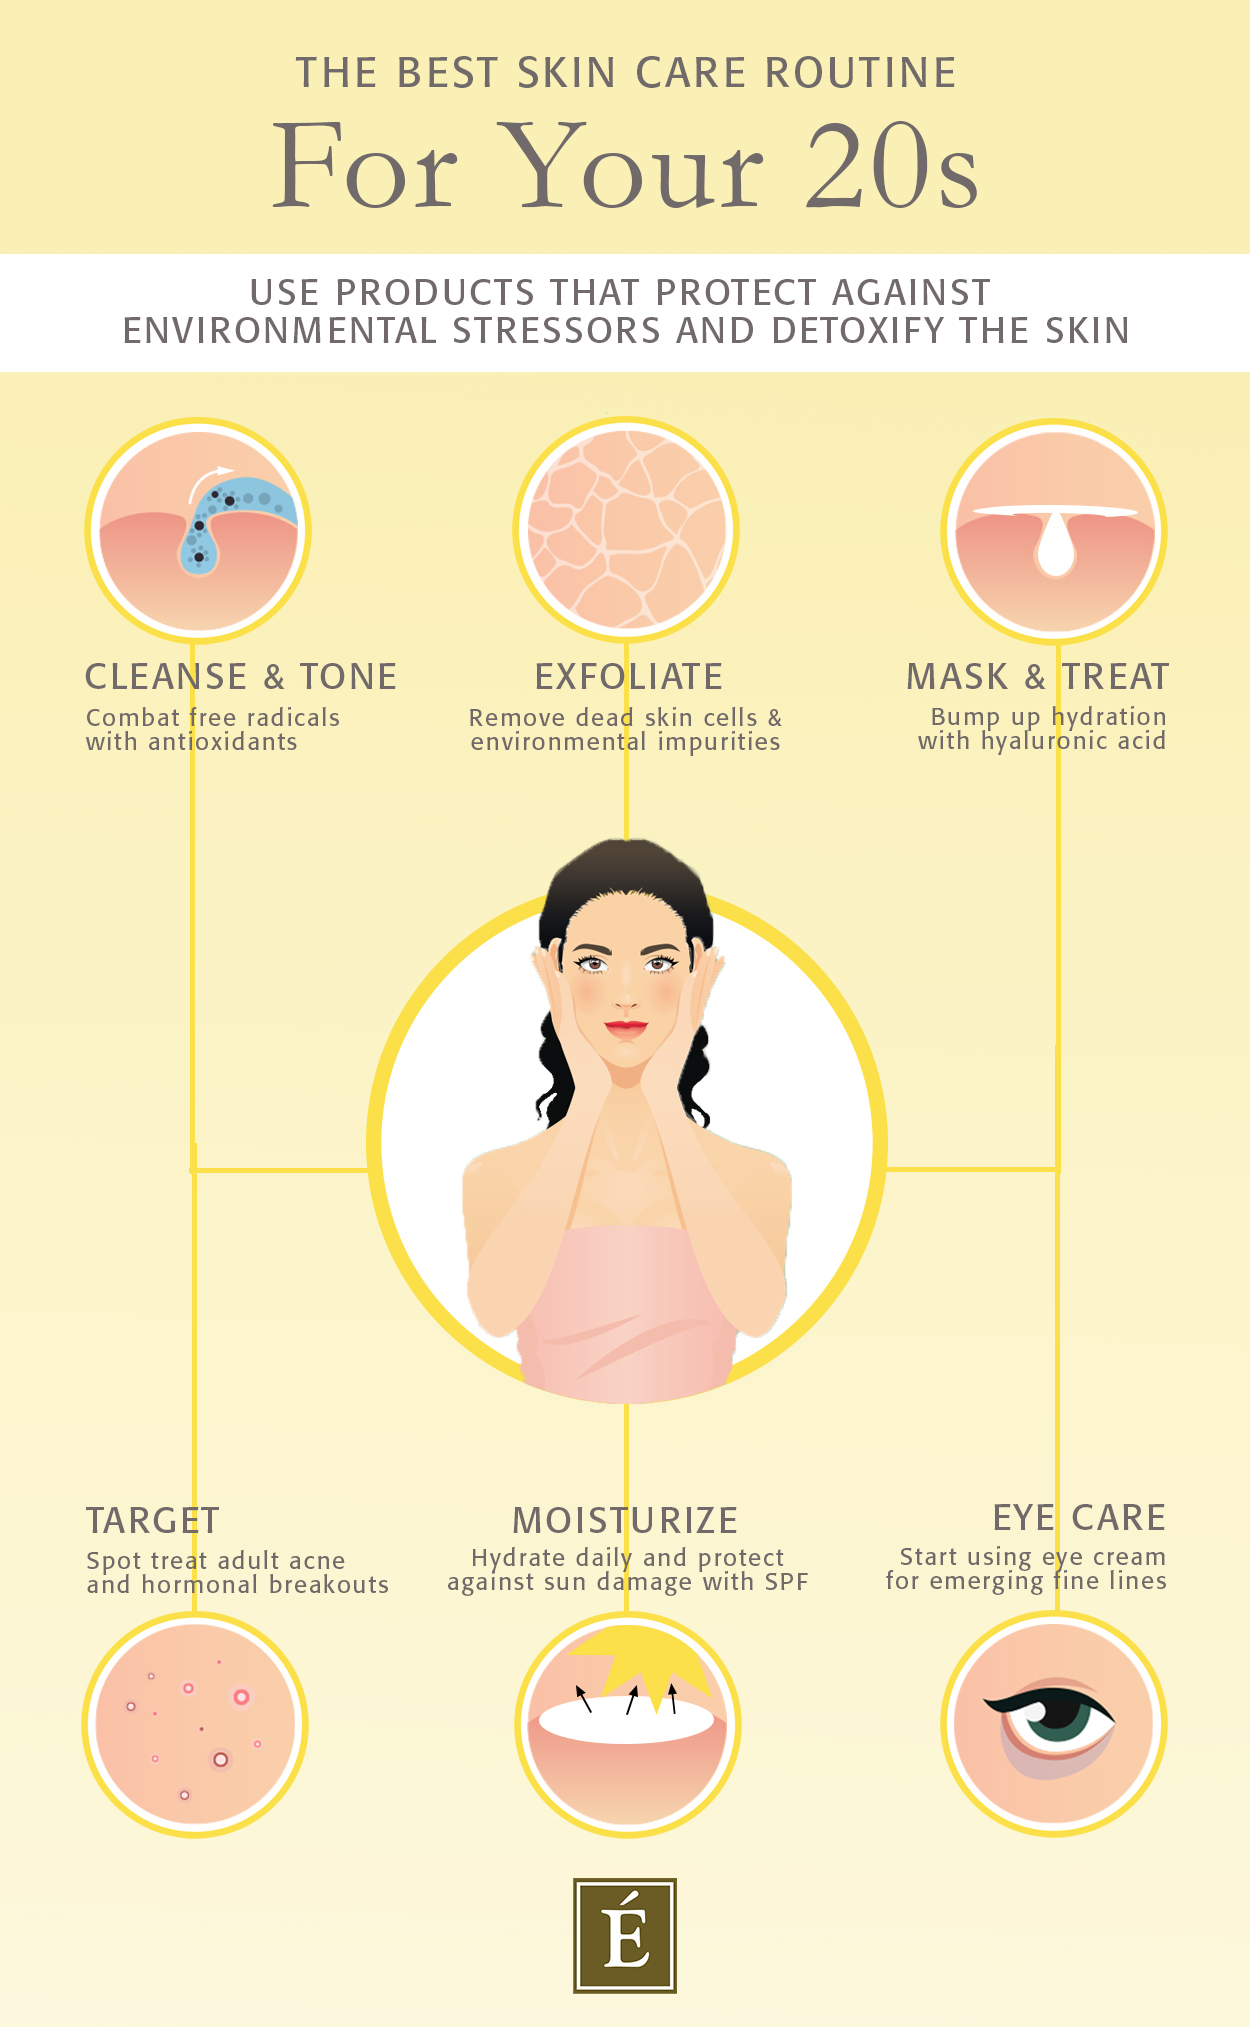 Treating Aging Skin - Great  Preserving Your Youthful Skin eminence-orgnaics-skin-care-routine-20s-infographic-v2